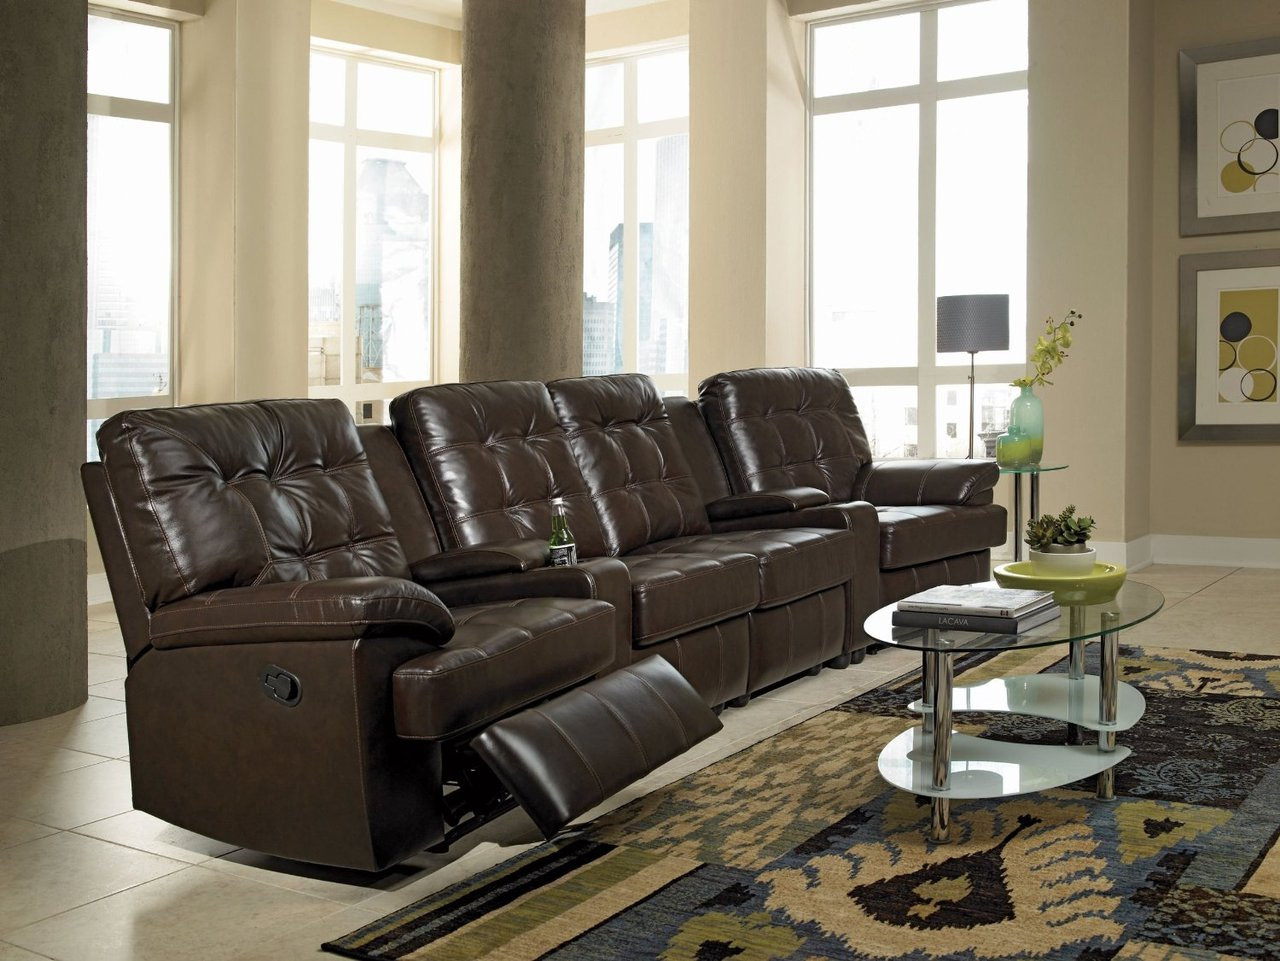 Kolten Chocolate Leather 6-PC Theater Seats - CB Furniture